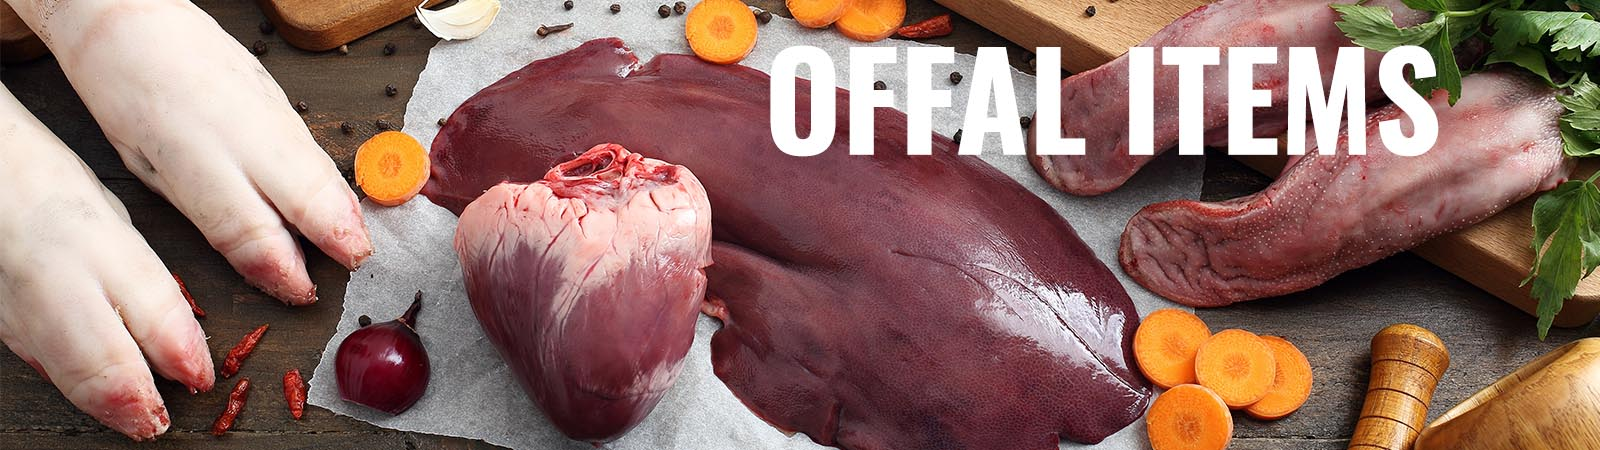 Offal Items